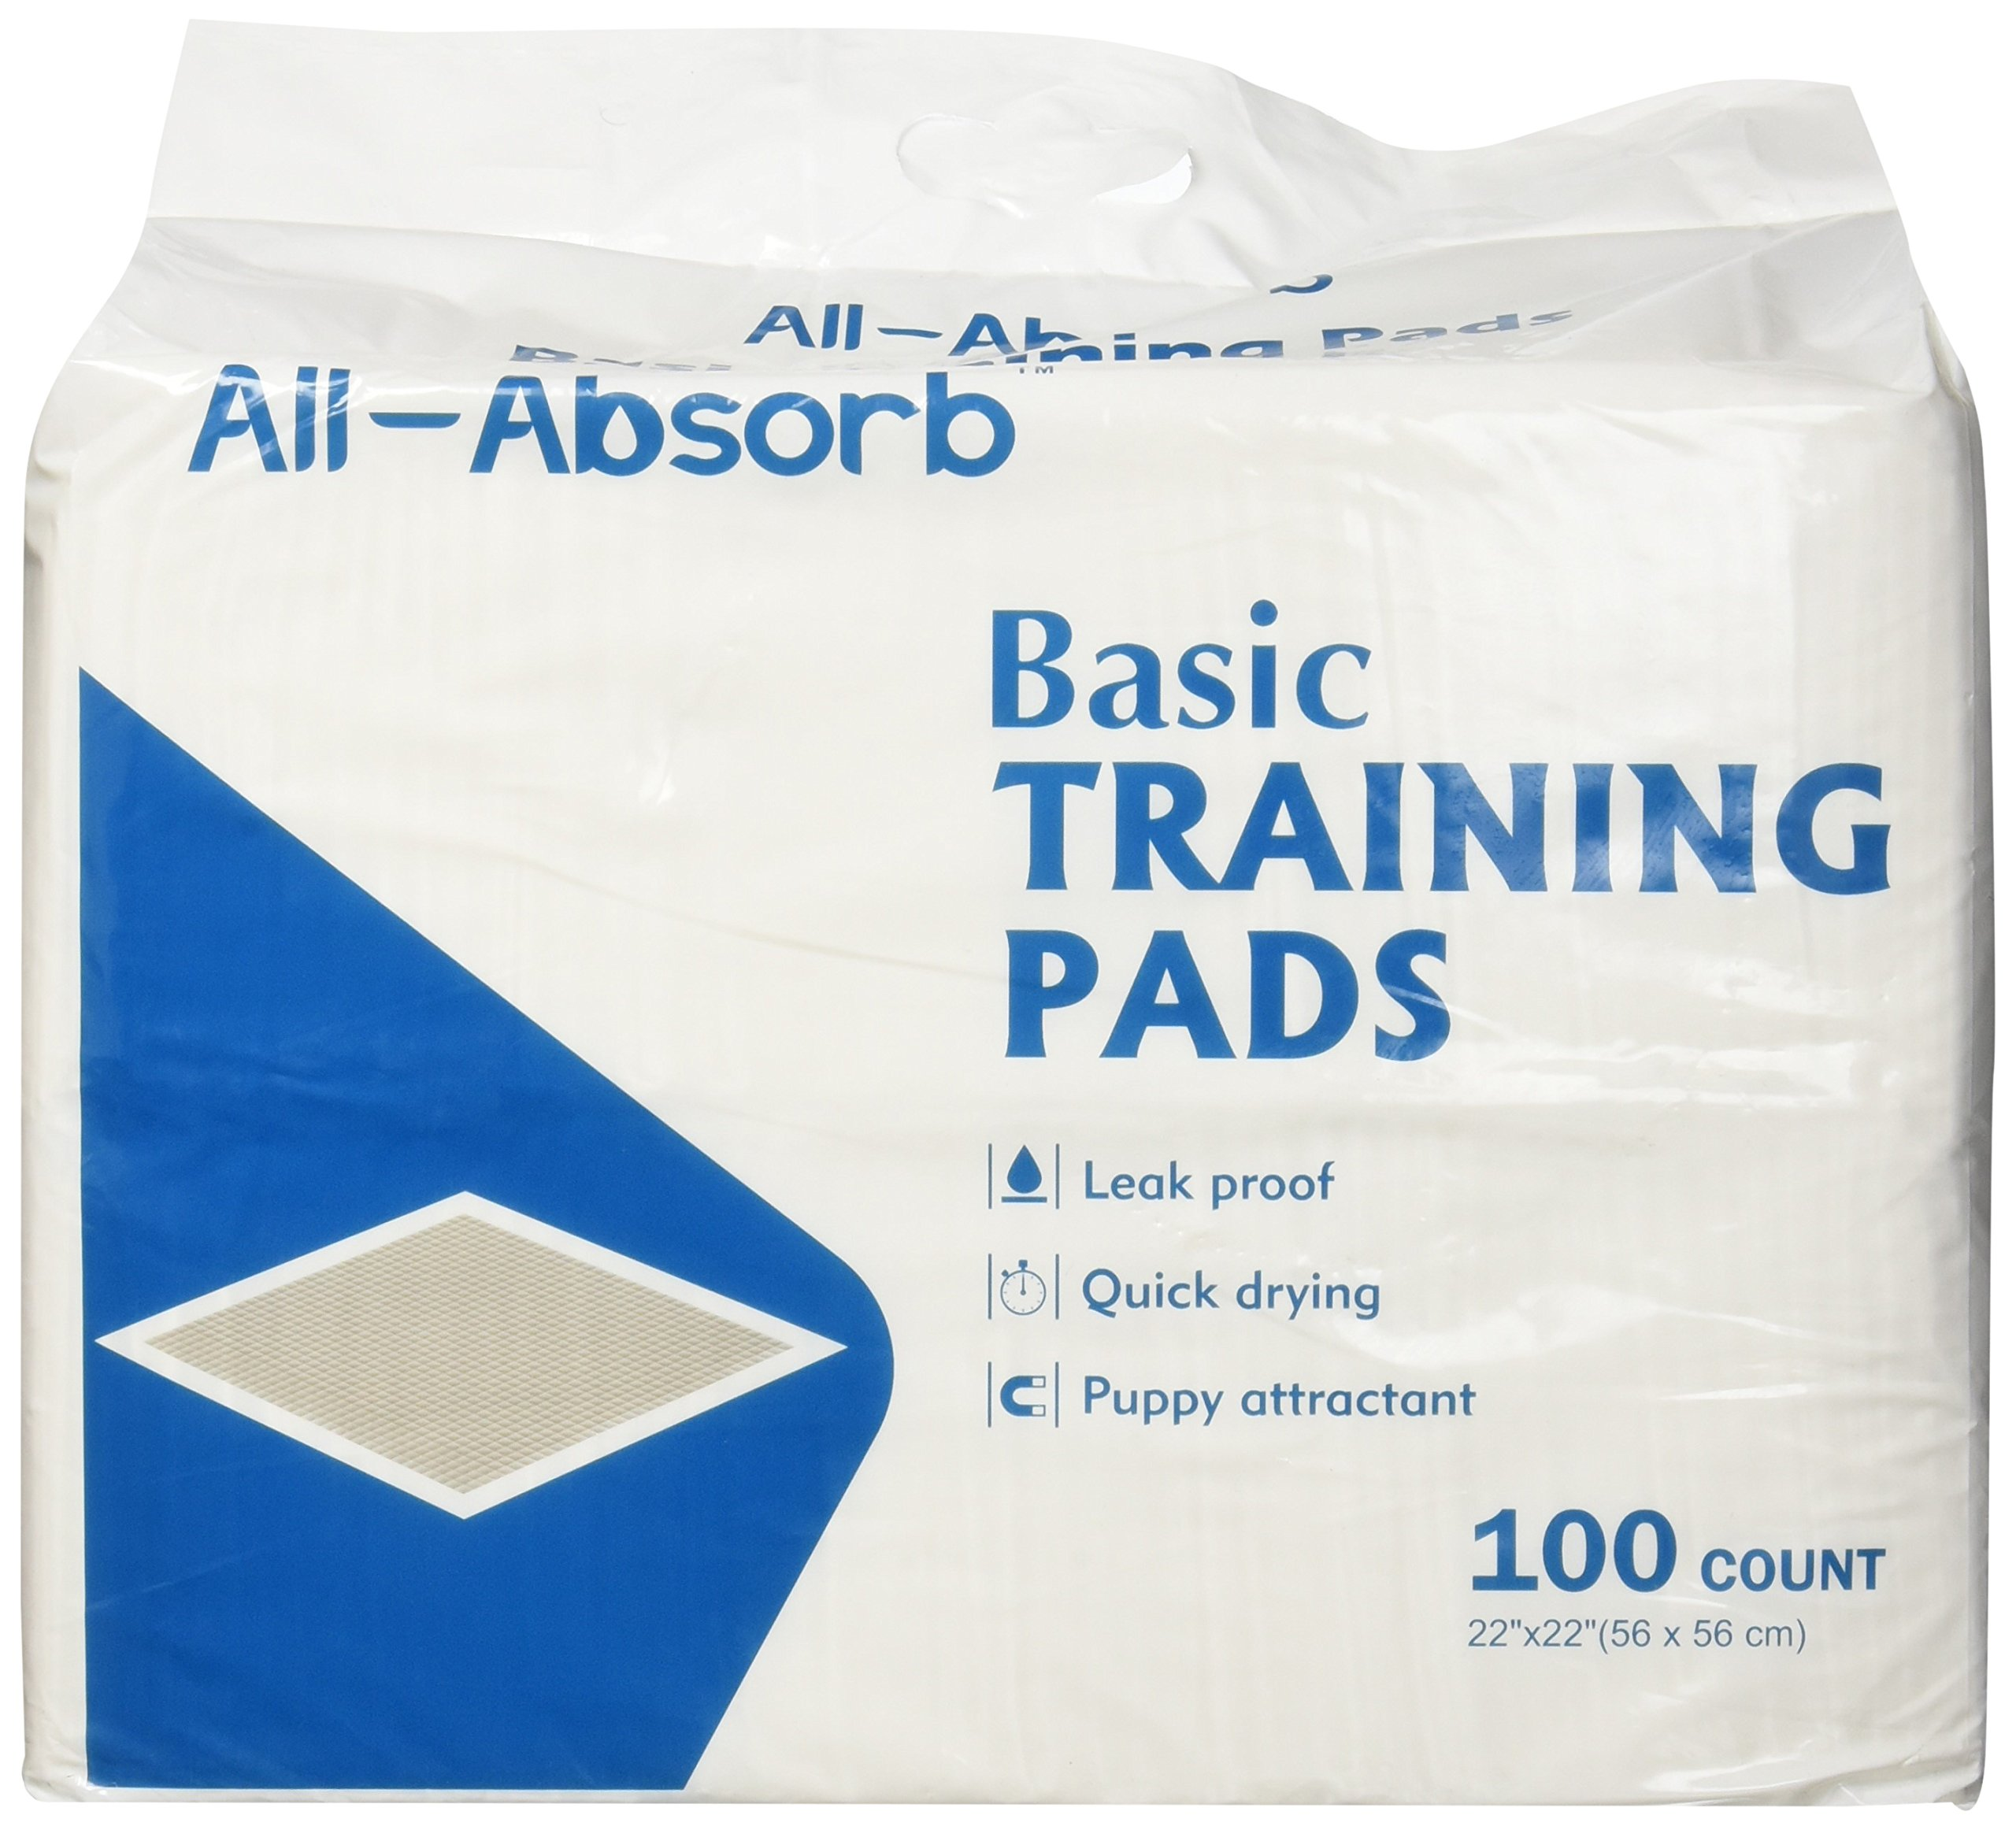 All-Absorb Basic Training Pads, 100Count, 22'' by 22''